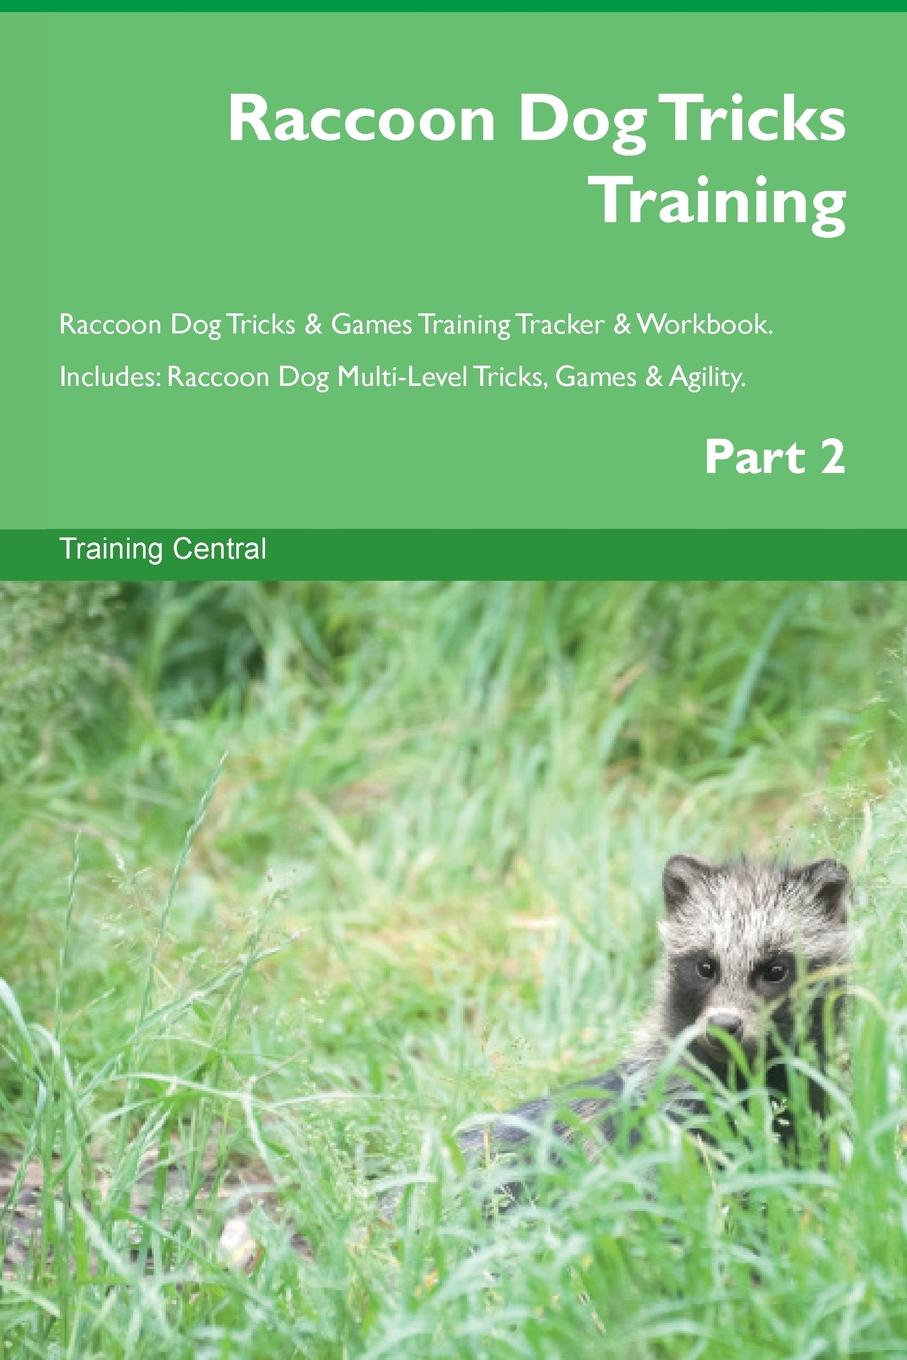 Training Central Raccoon Dog Tricks Training Raccoon Dog Tricks . Games Training Tracker . Workbook. Includes. Raccoon Dog Multi-Level Tricks, Games . Agility. Part 2 this book loves you